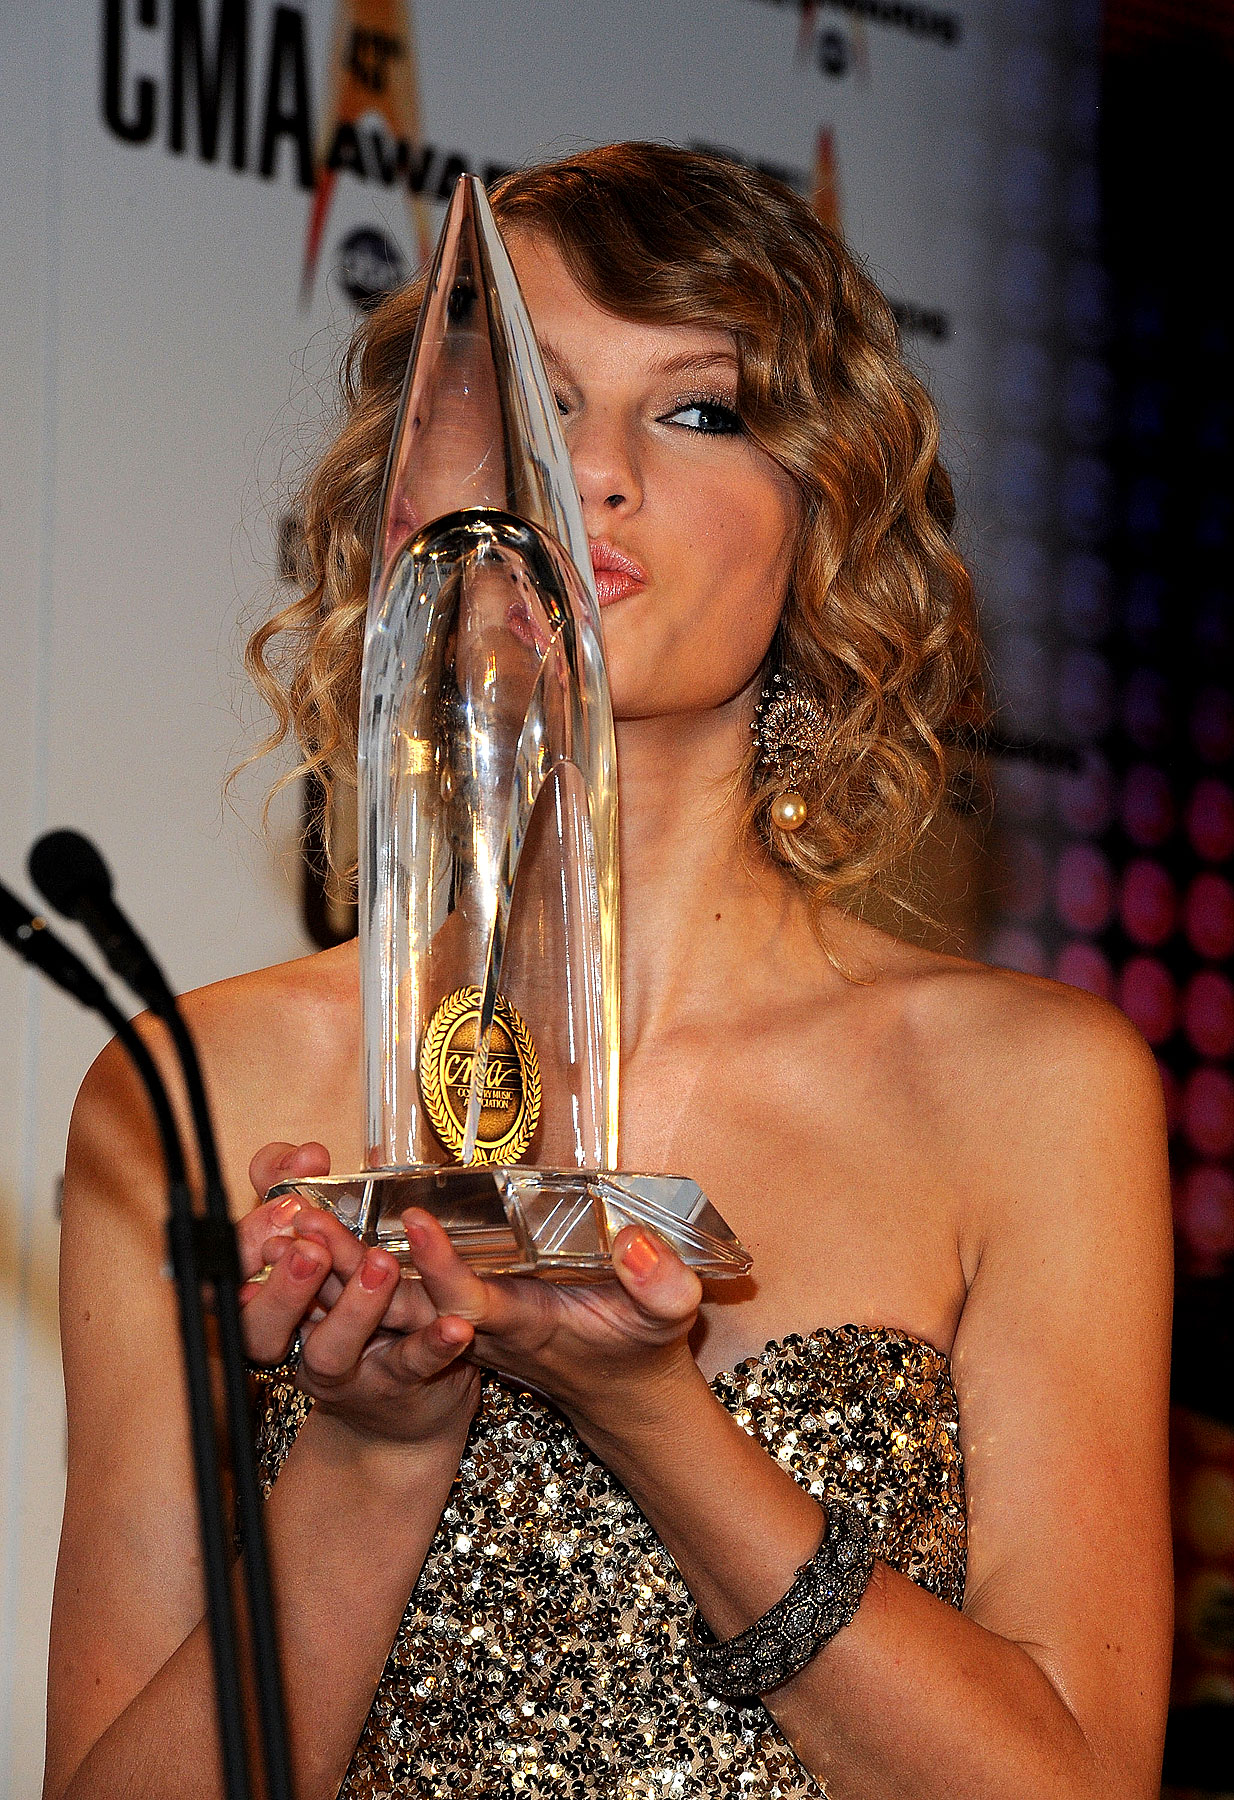 PHOTO GALLERY: Taylor Swift Sweeps the CMAs